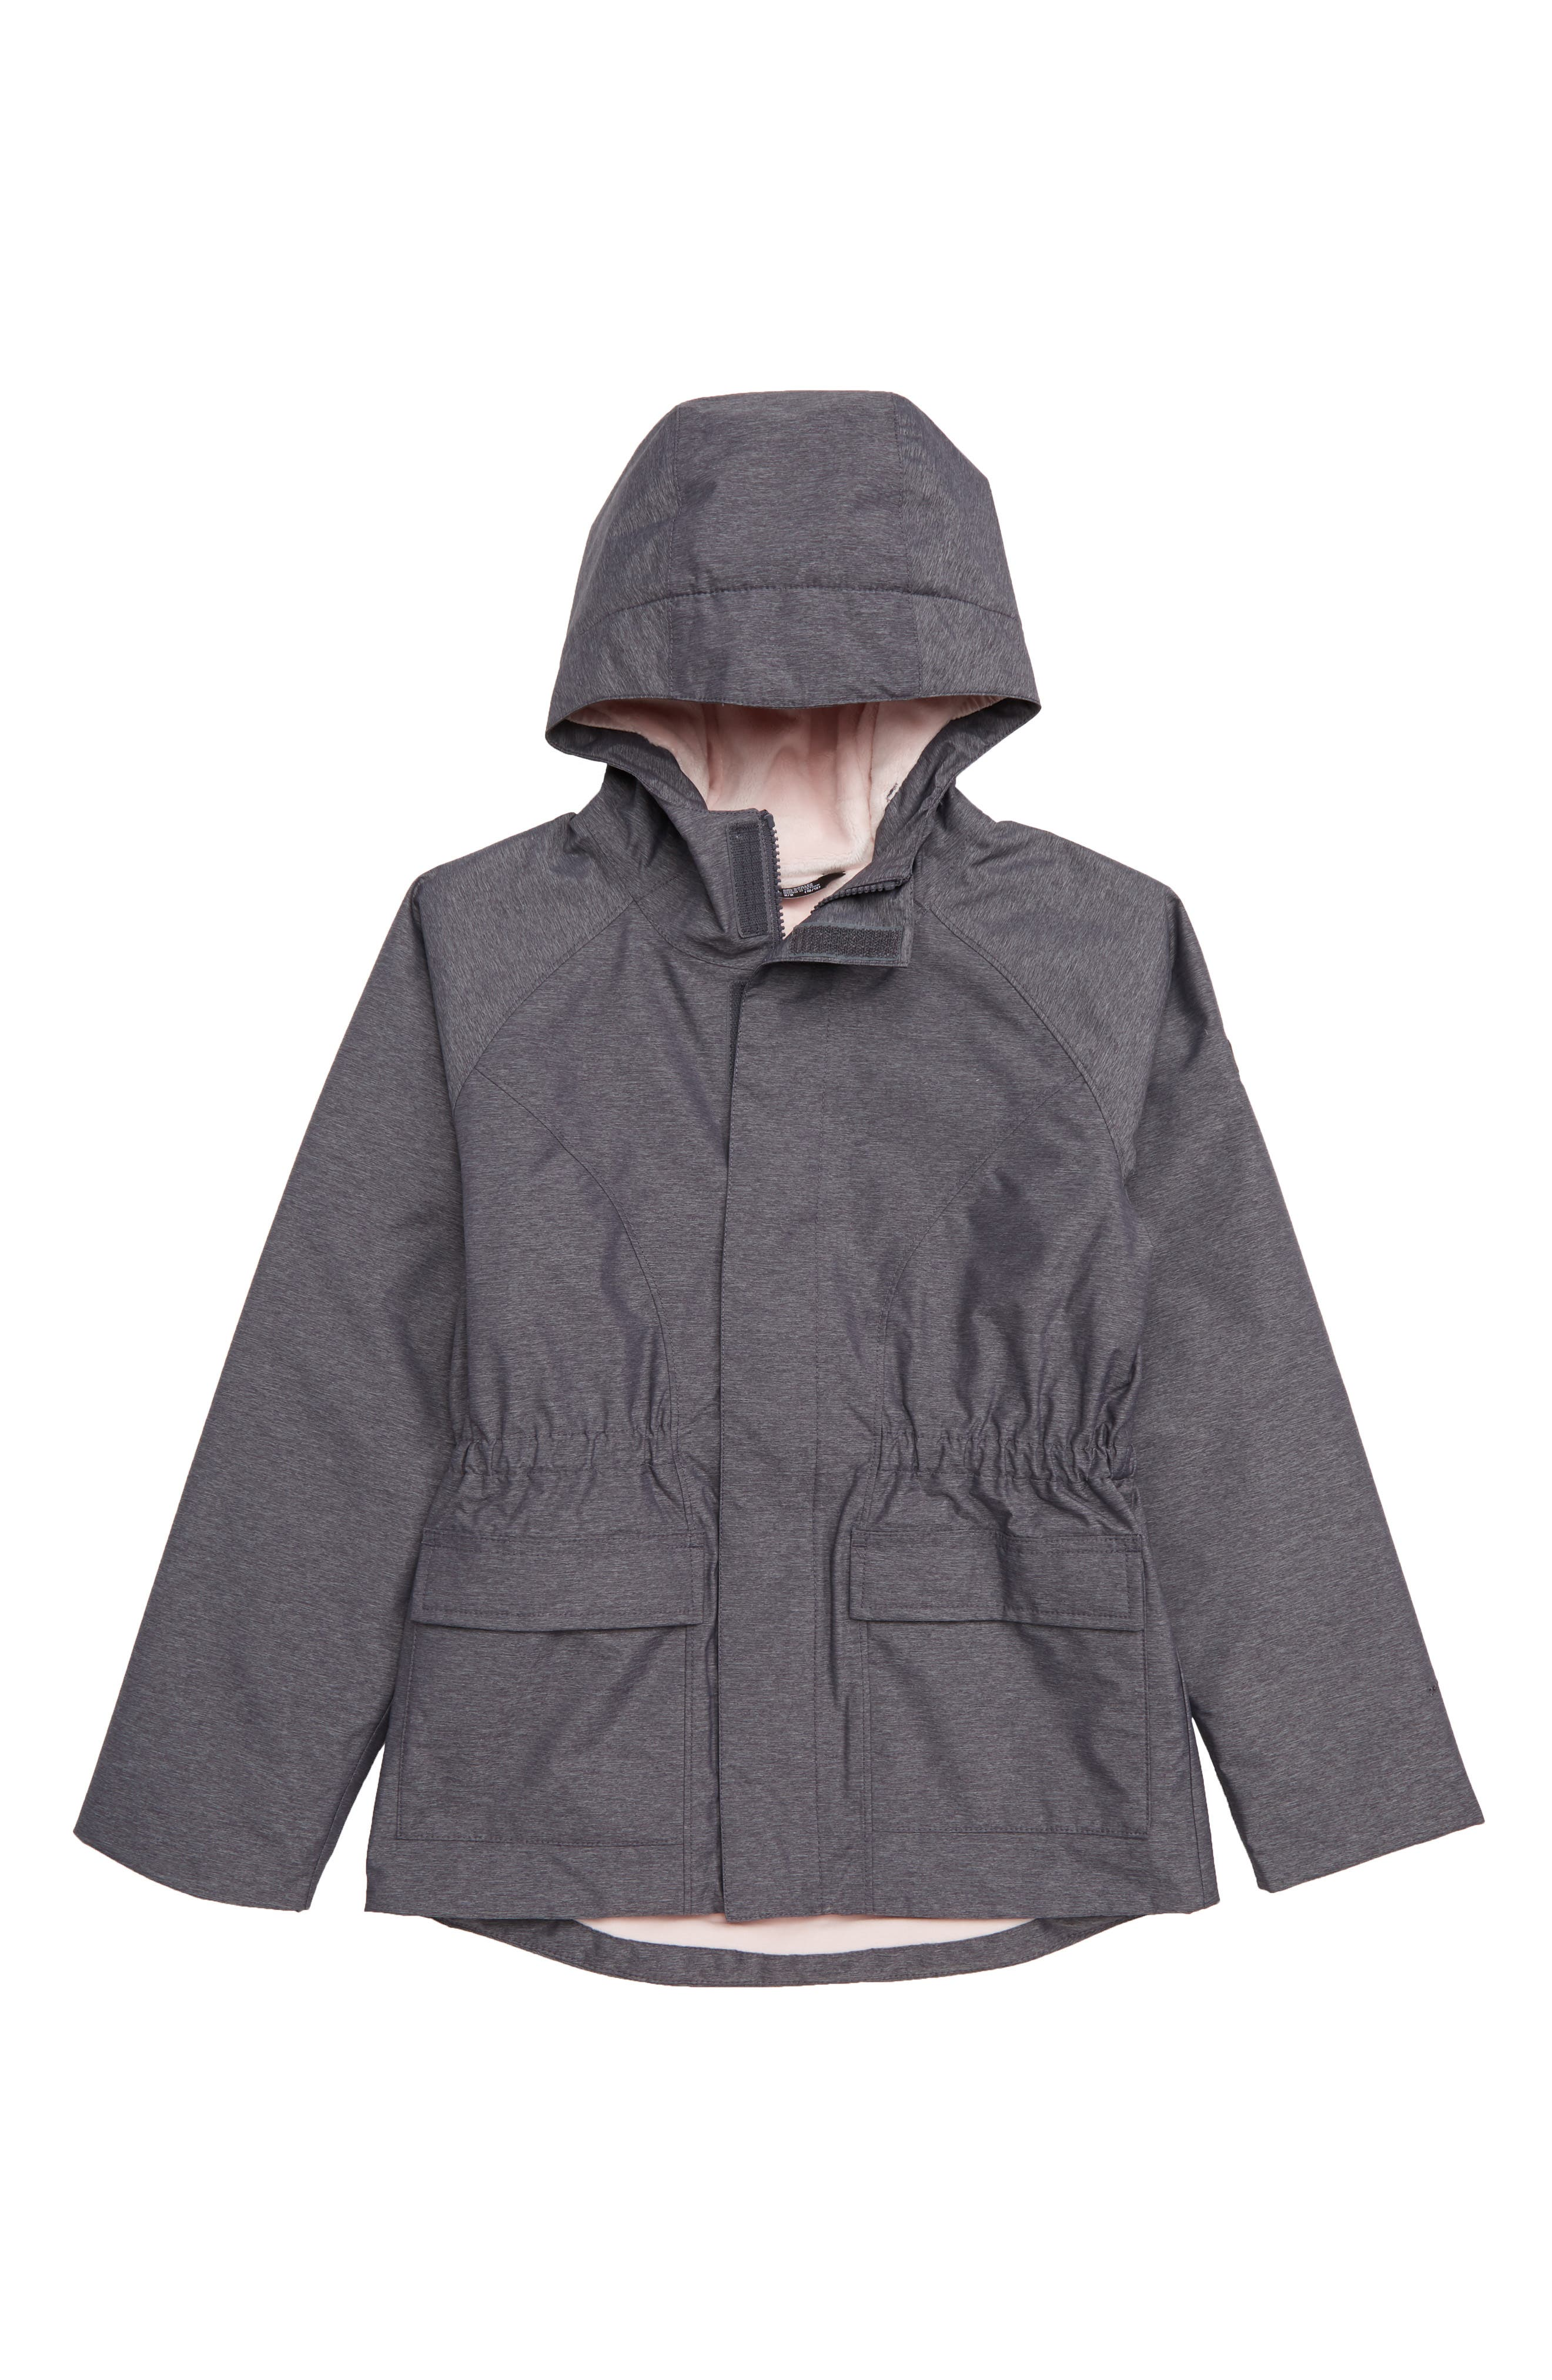 Warm Sophie Hooded Rain Parka,                             Main thumbnail 1, color,                             PERISCOPE GREY HEATHER